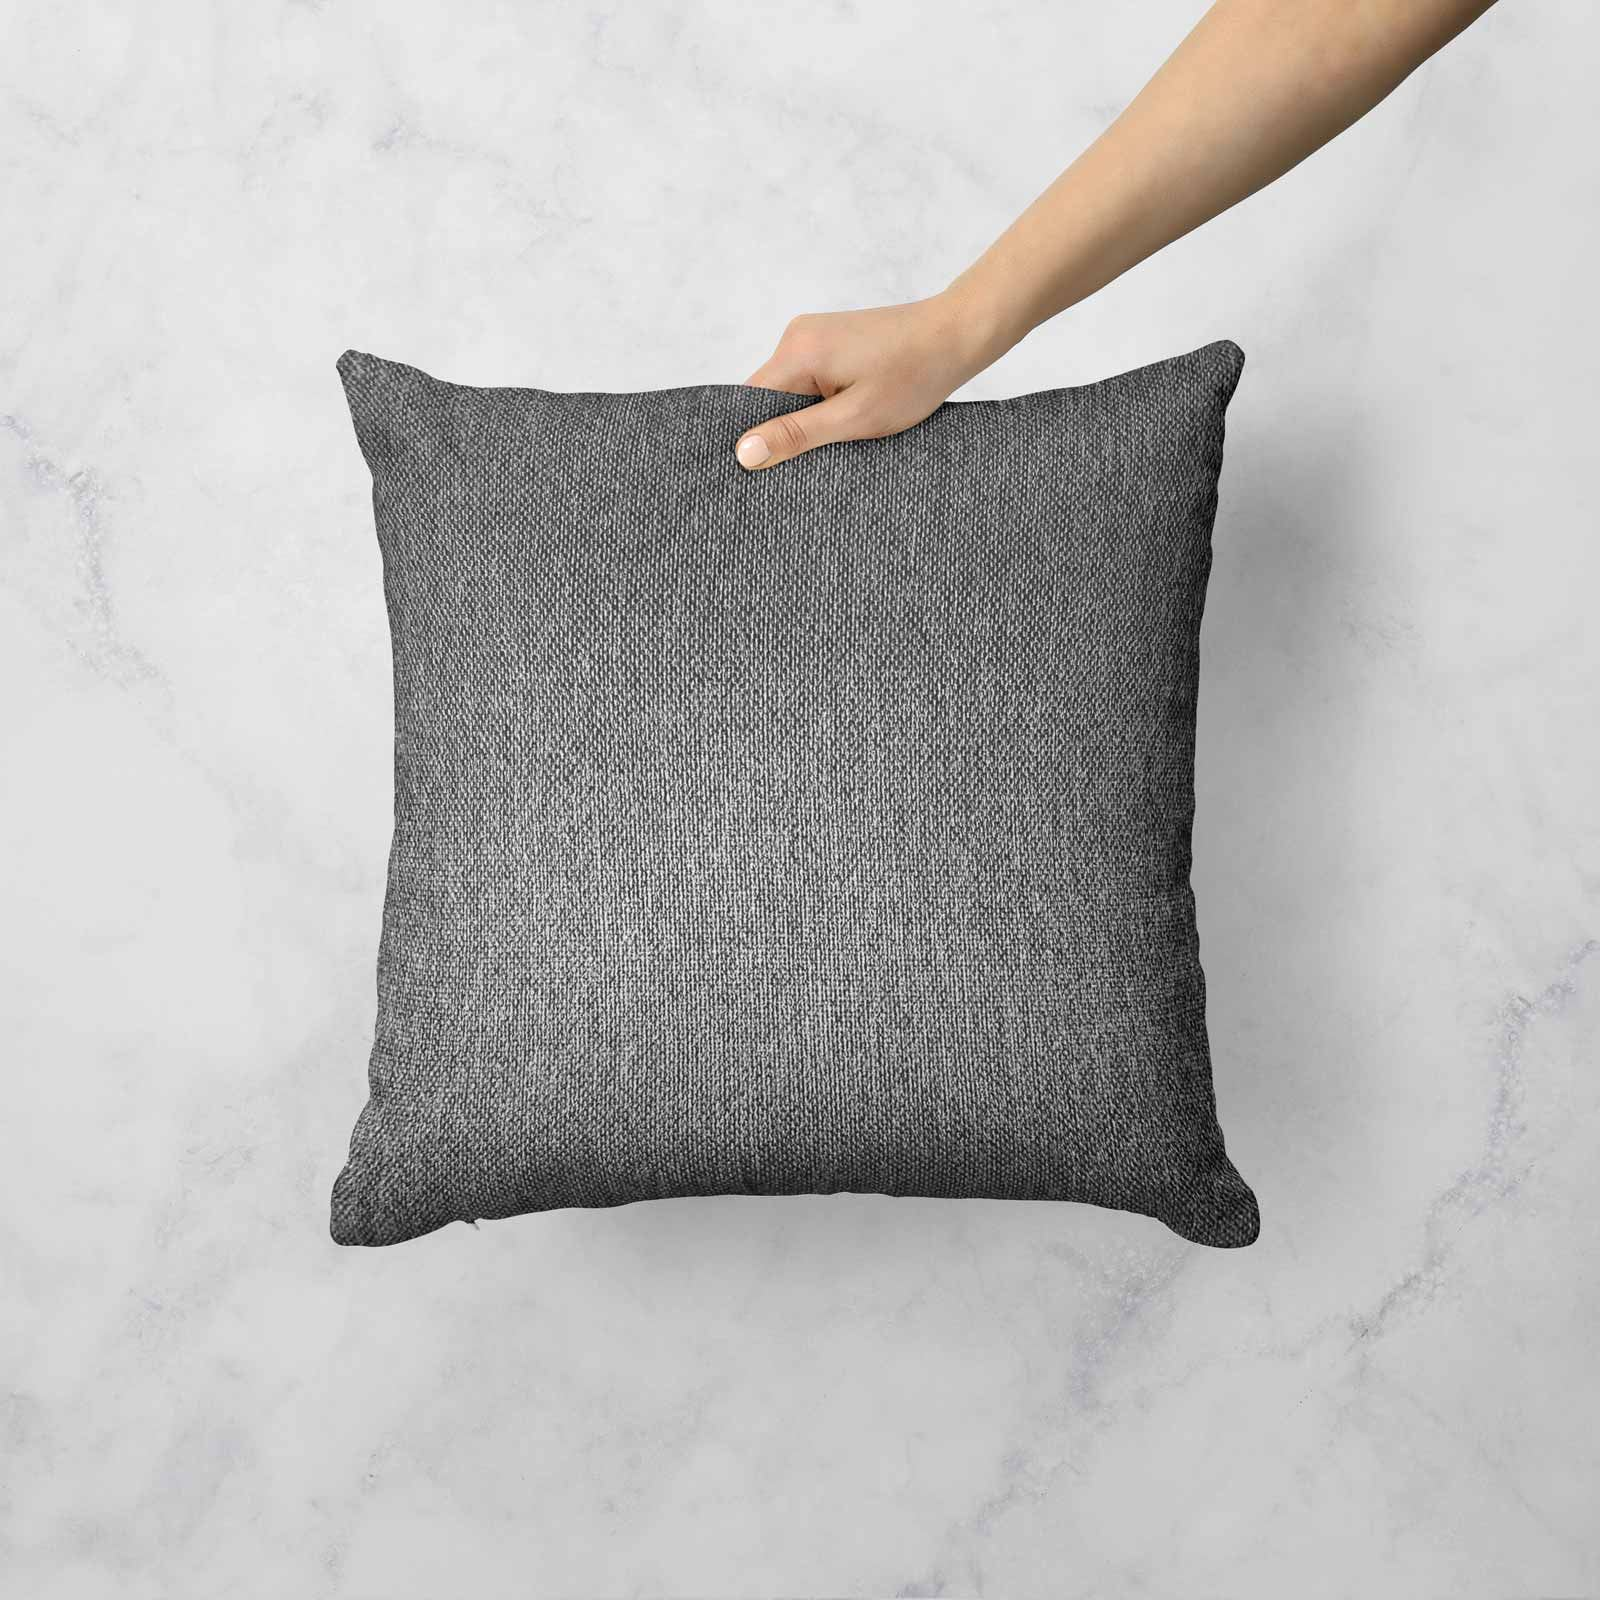 Grey-Silver-Charcoal-Black-Cushion-Covers-18-034-x-18-034-45cm-x-45cm-Luxury-Cover